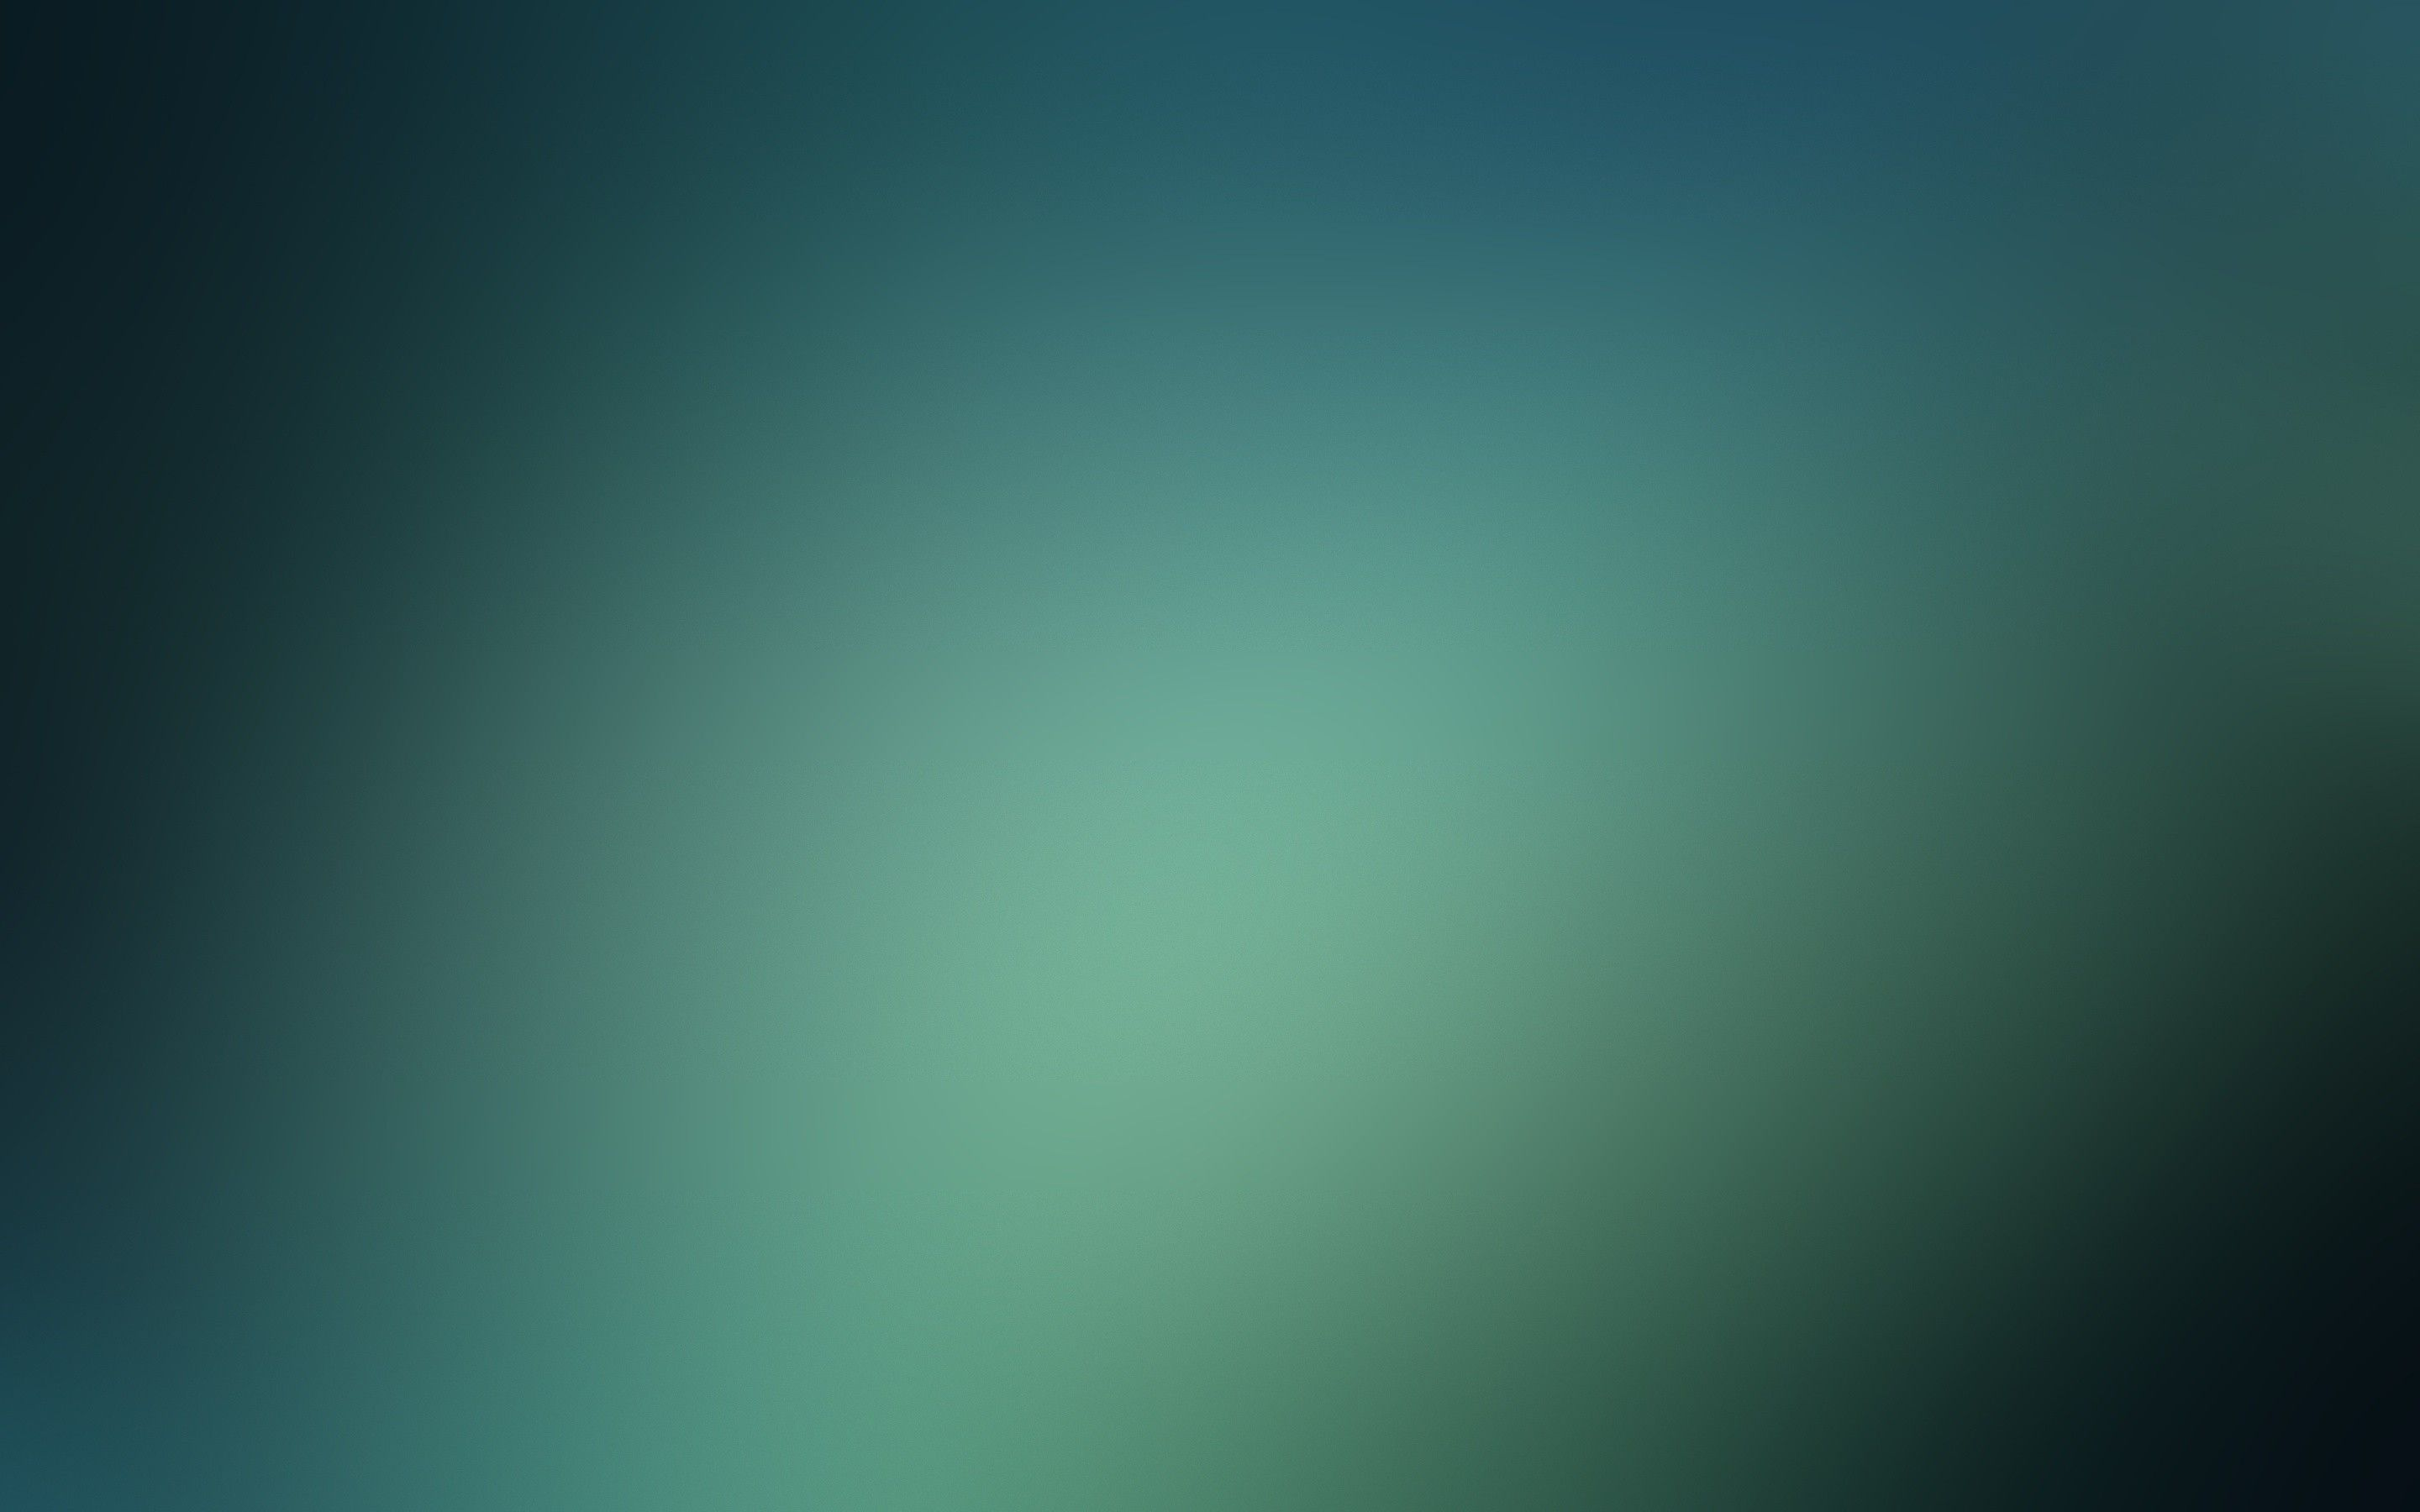 Simple background   SF Wallpaper 2880x1800